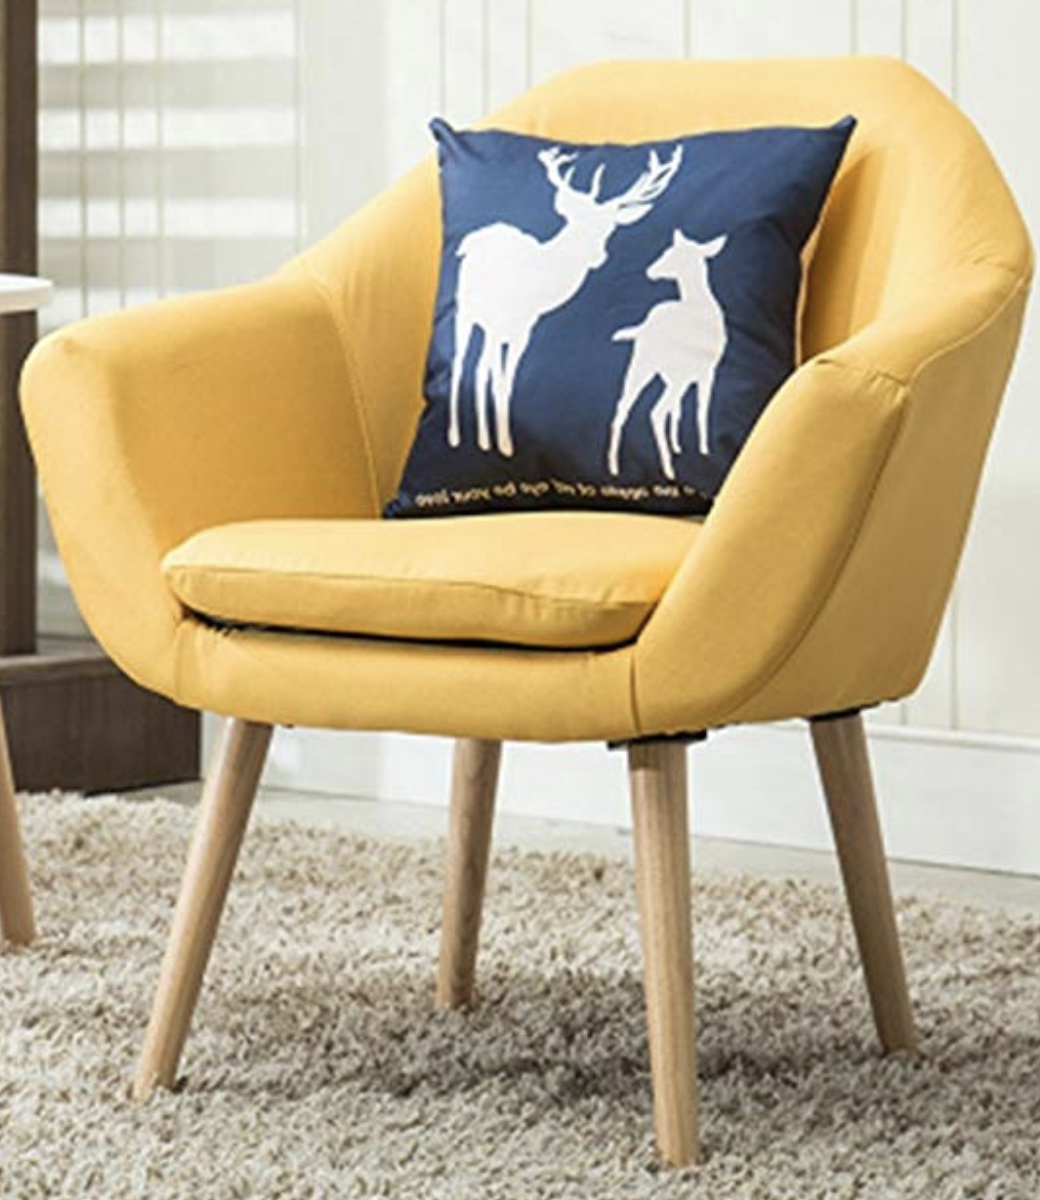 6 Mustard Yellow Accent Chairs For Stylish Homes – Cute In Giguere Barrel Chairs (View 3 of 15)